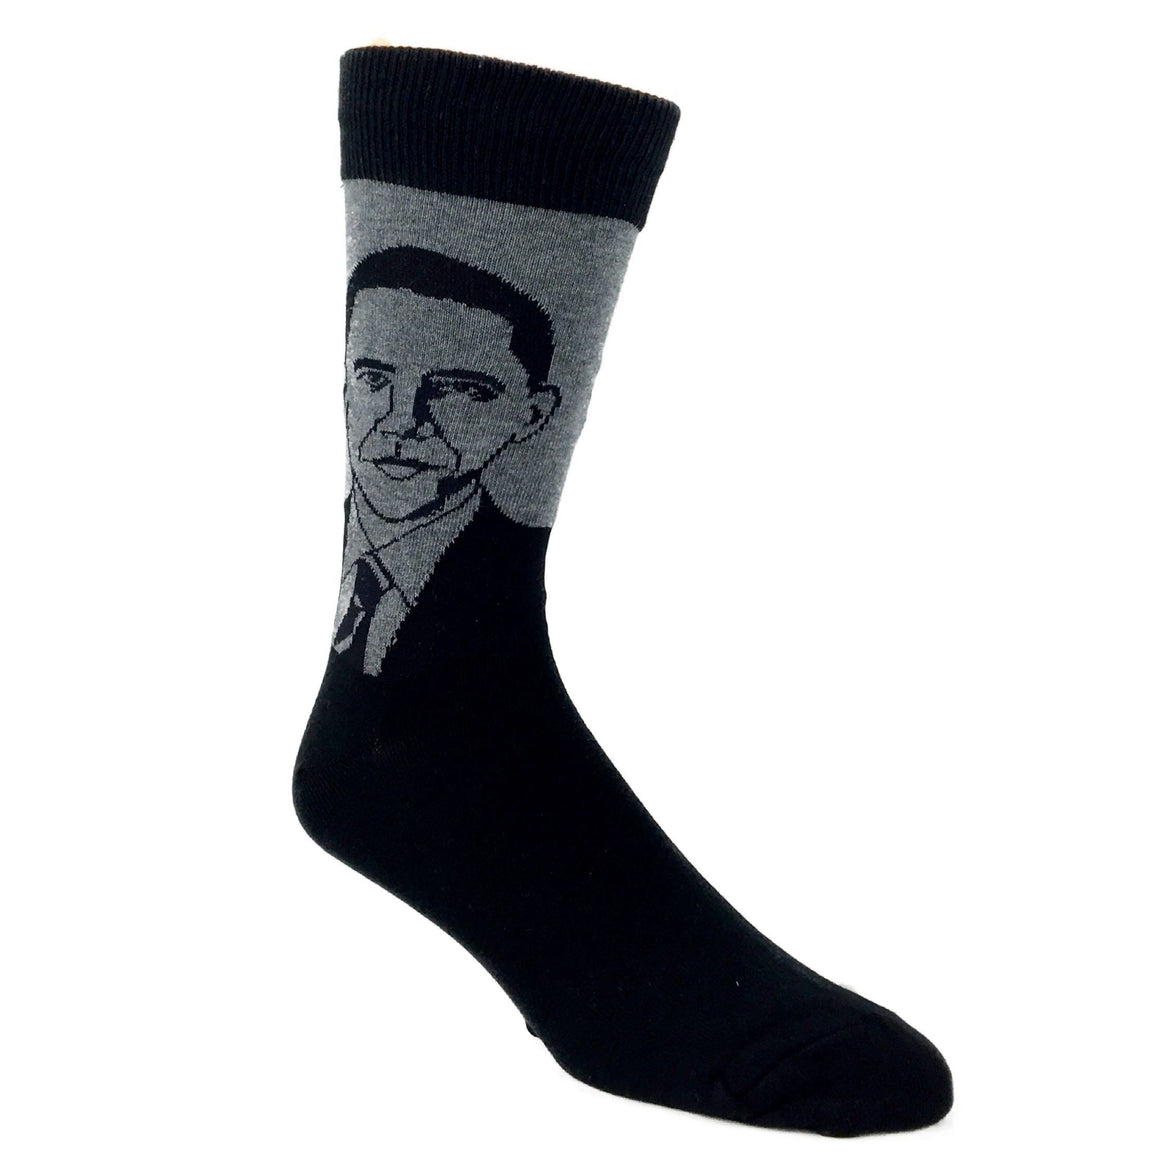 Barack Obama Socks in Grey by SockSmith - The Sock Spot